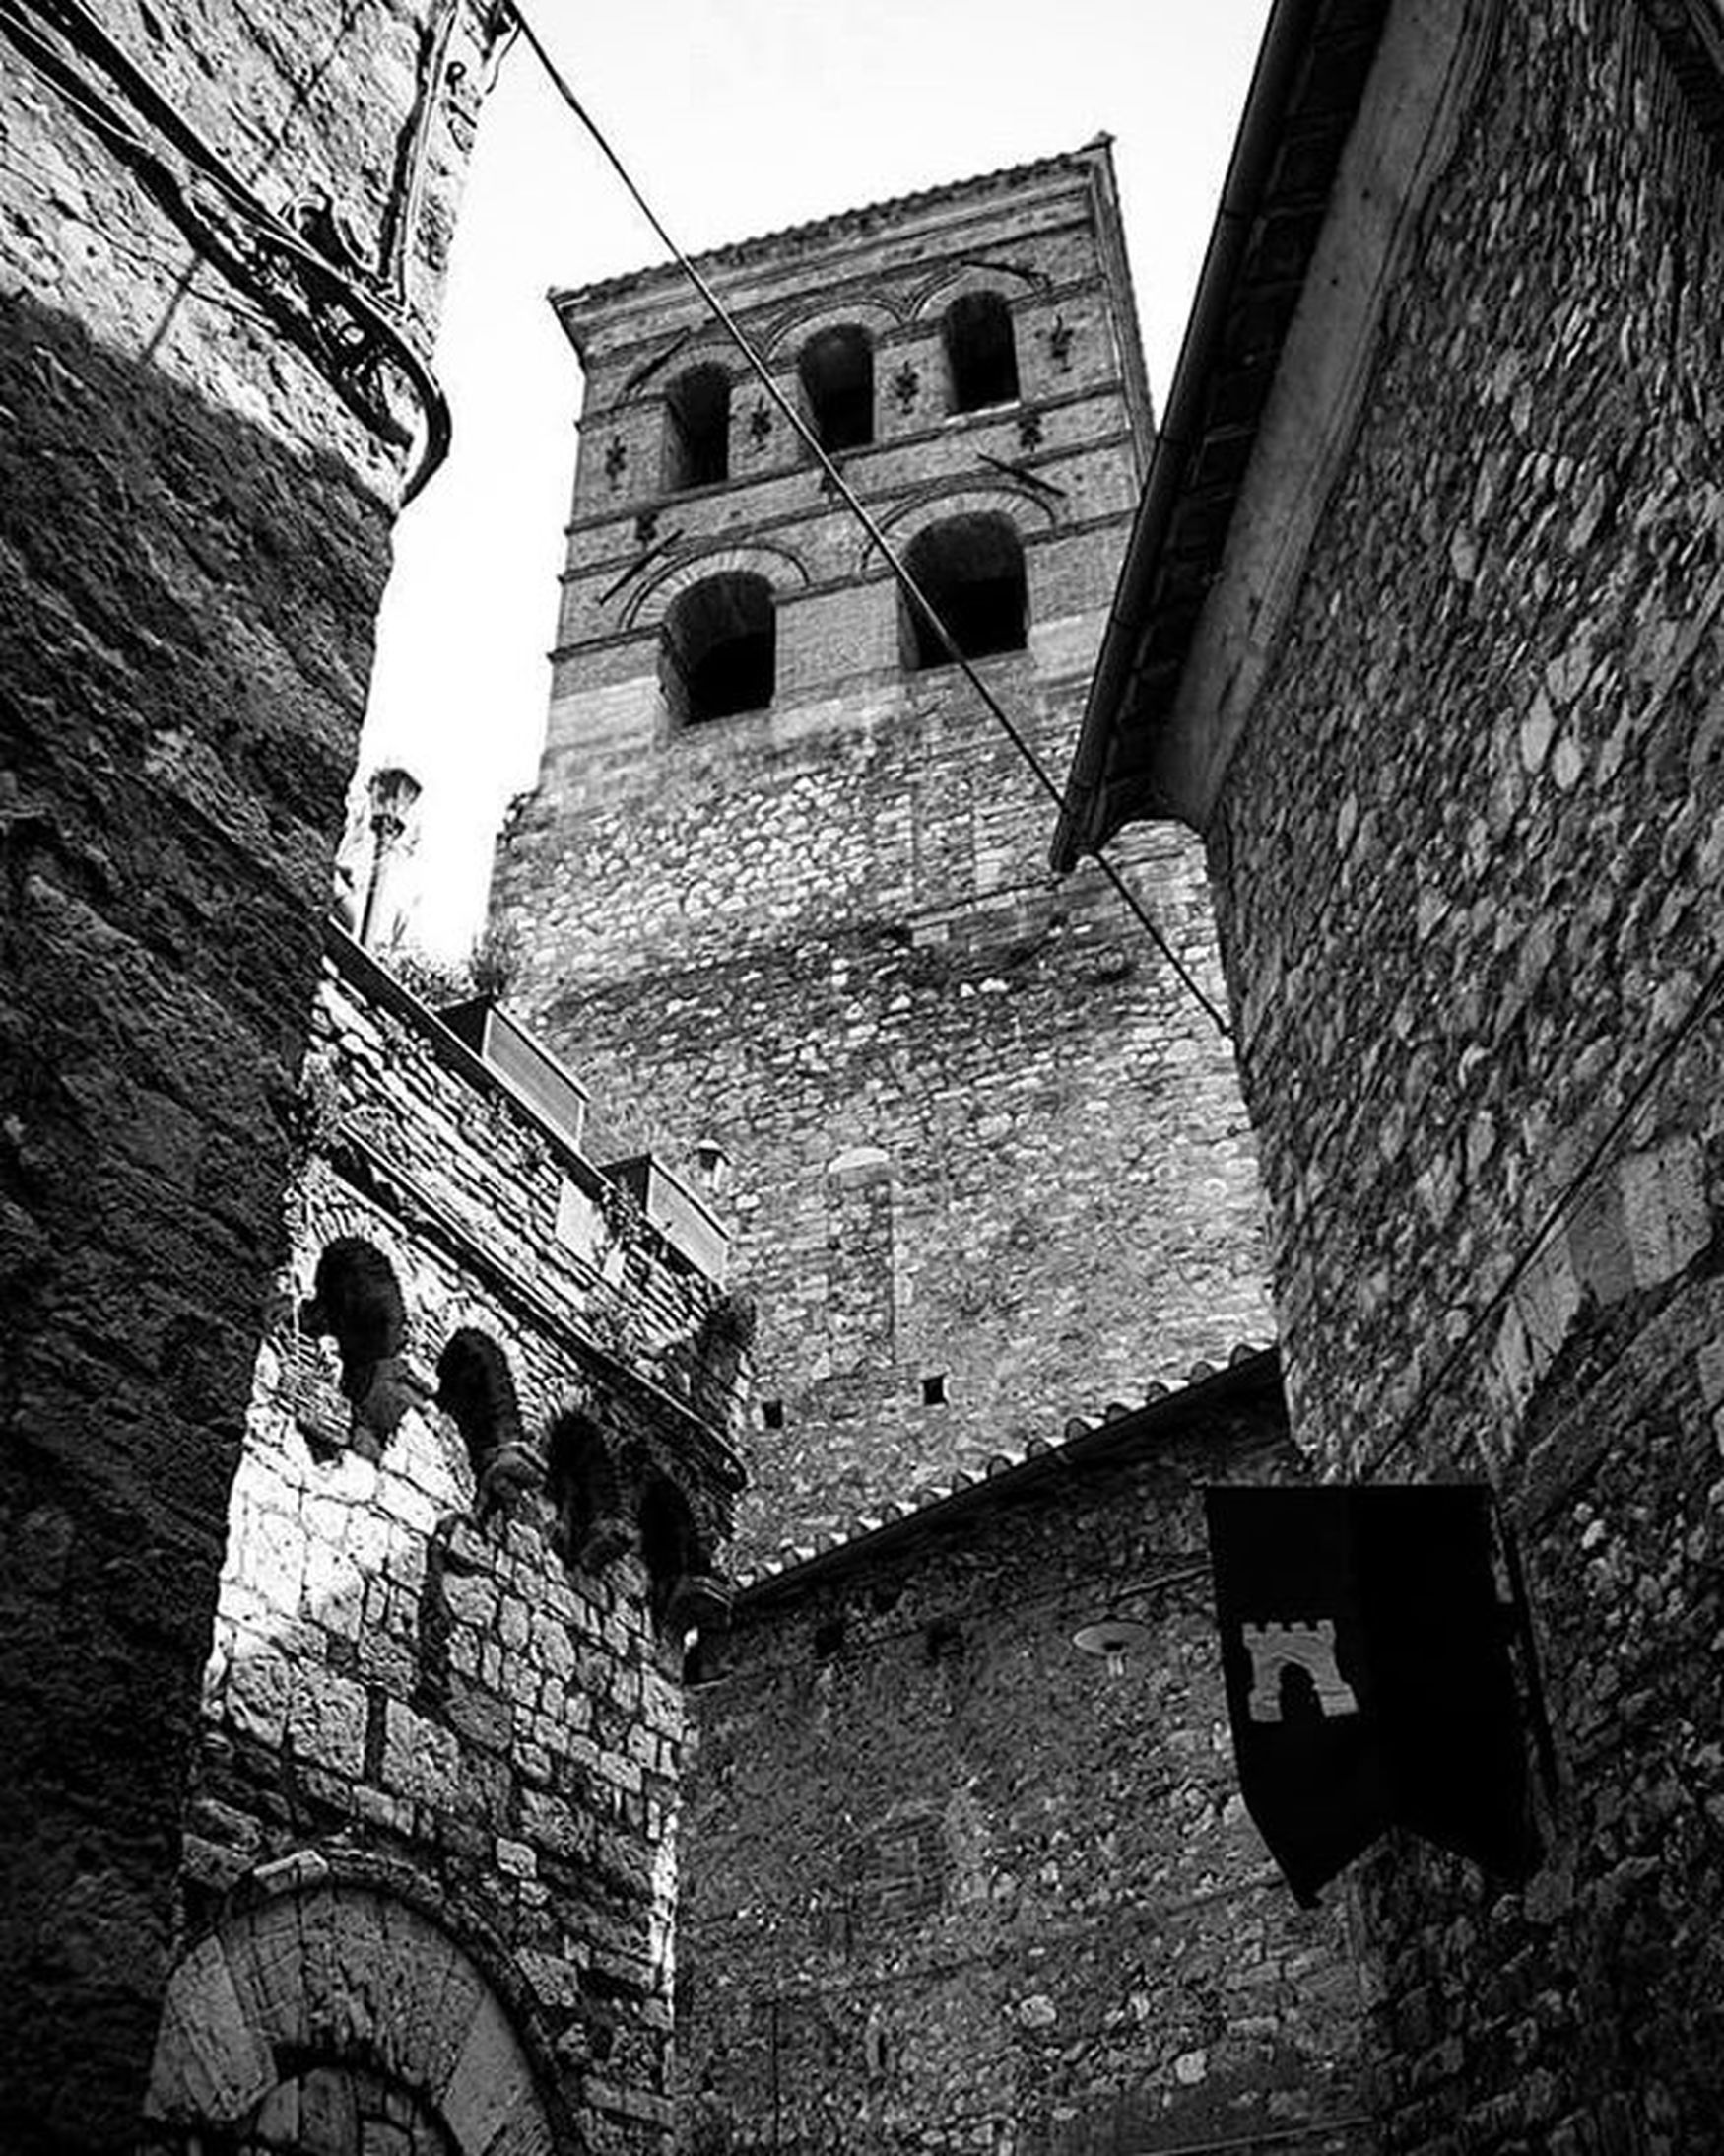 """Se imbocchi il vicolo giusto, a Sin City puoi scoprire qualsiasi cosa..."" Narni Italia Italy Umbria Blackandwhite Photography Blackandwhite Biancoenero Bnw_collection Bnw_worldwide Bnw_italia Bnw_captures Bnw_life Bnwphotography Bnw Photography Bnw_city Medioeval Cities Medioevo Borghiditalia Borghipiúbelliditalia Borghiantichi Narnia  Lecronachedinarnia Monochrome Monochrome _ Collection Monochrome_life"